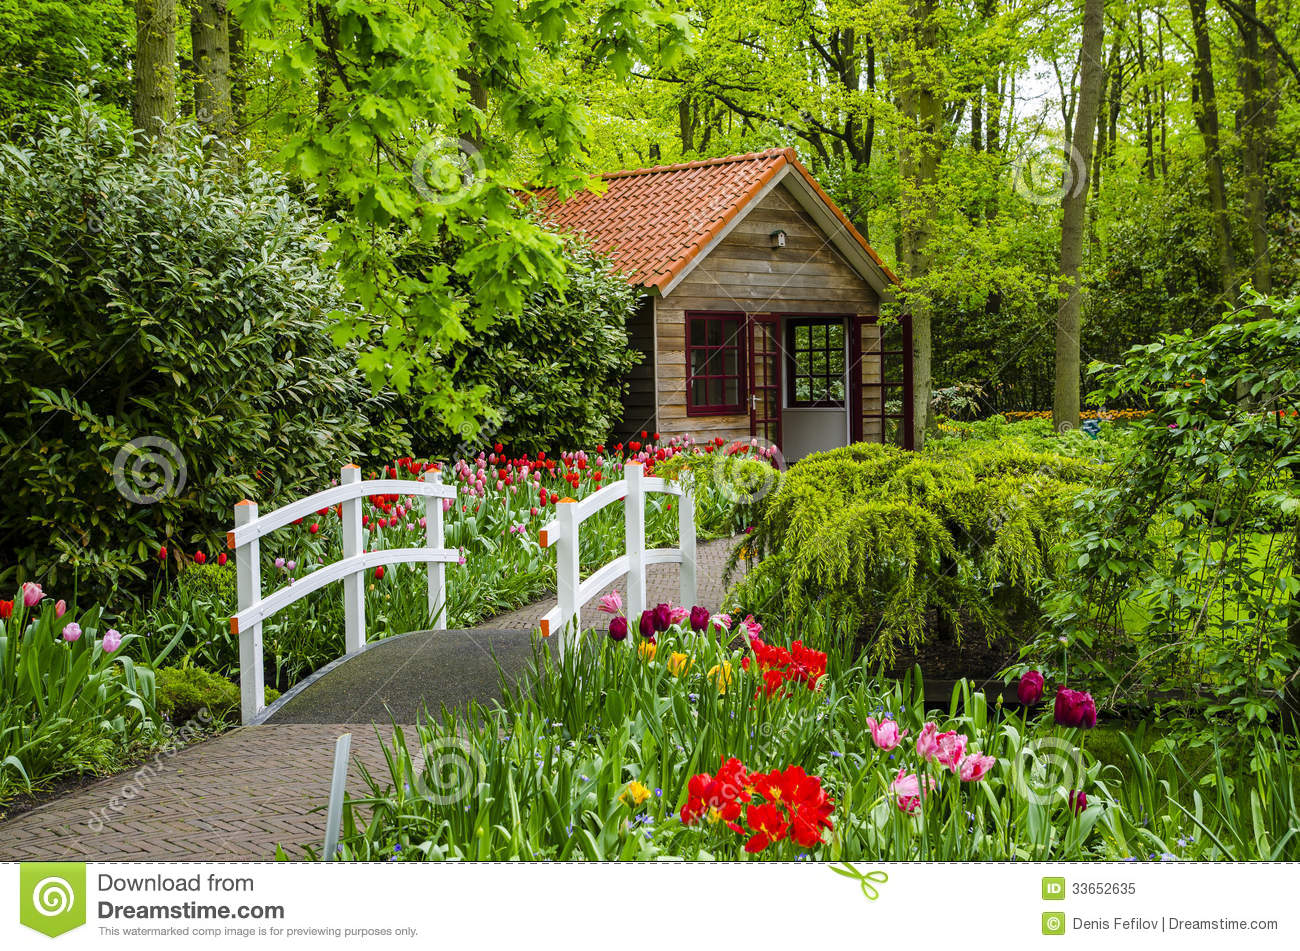 maison de campagne et pont blanc dans des jardins de keukenhof image stock image du paysage. Black Bedroom Furniture Sets. Home Design Ideas